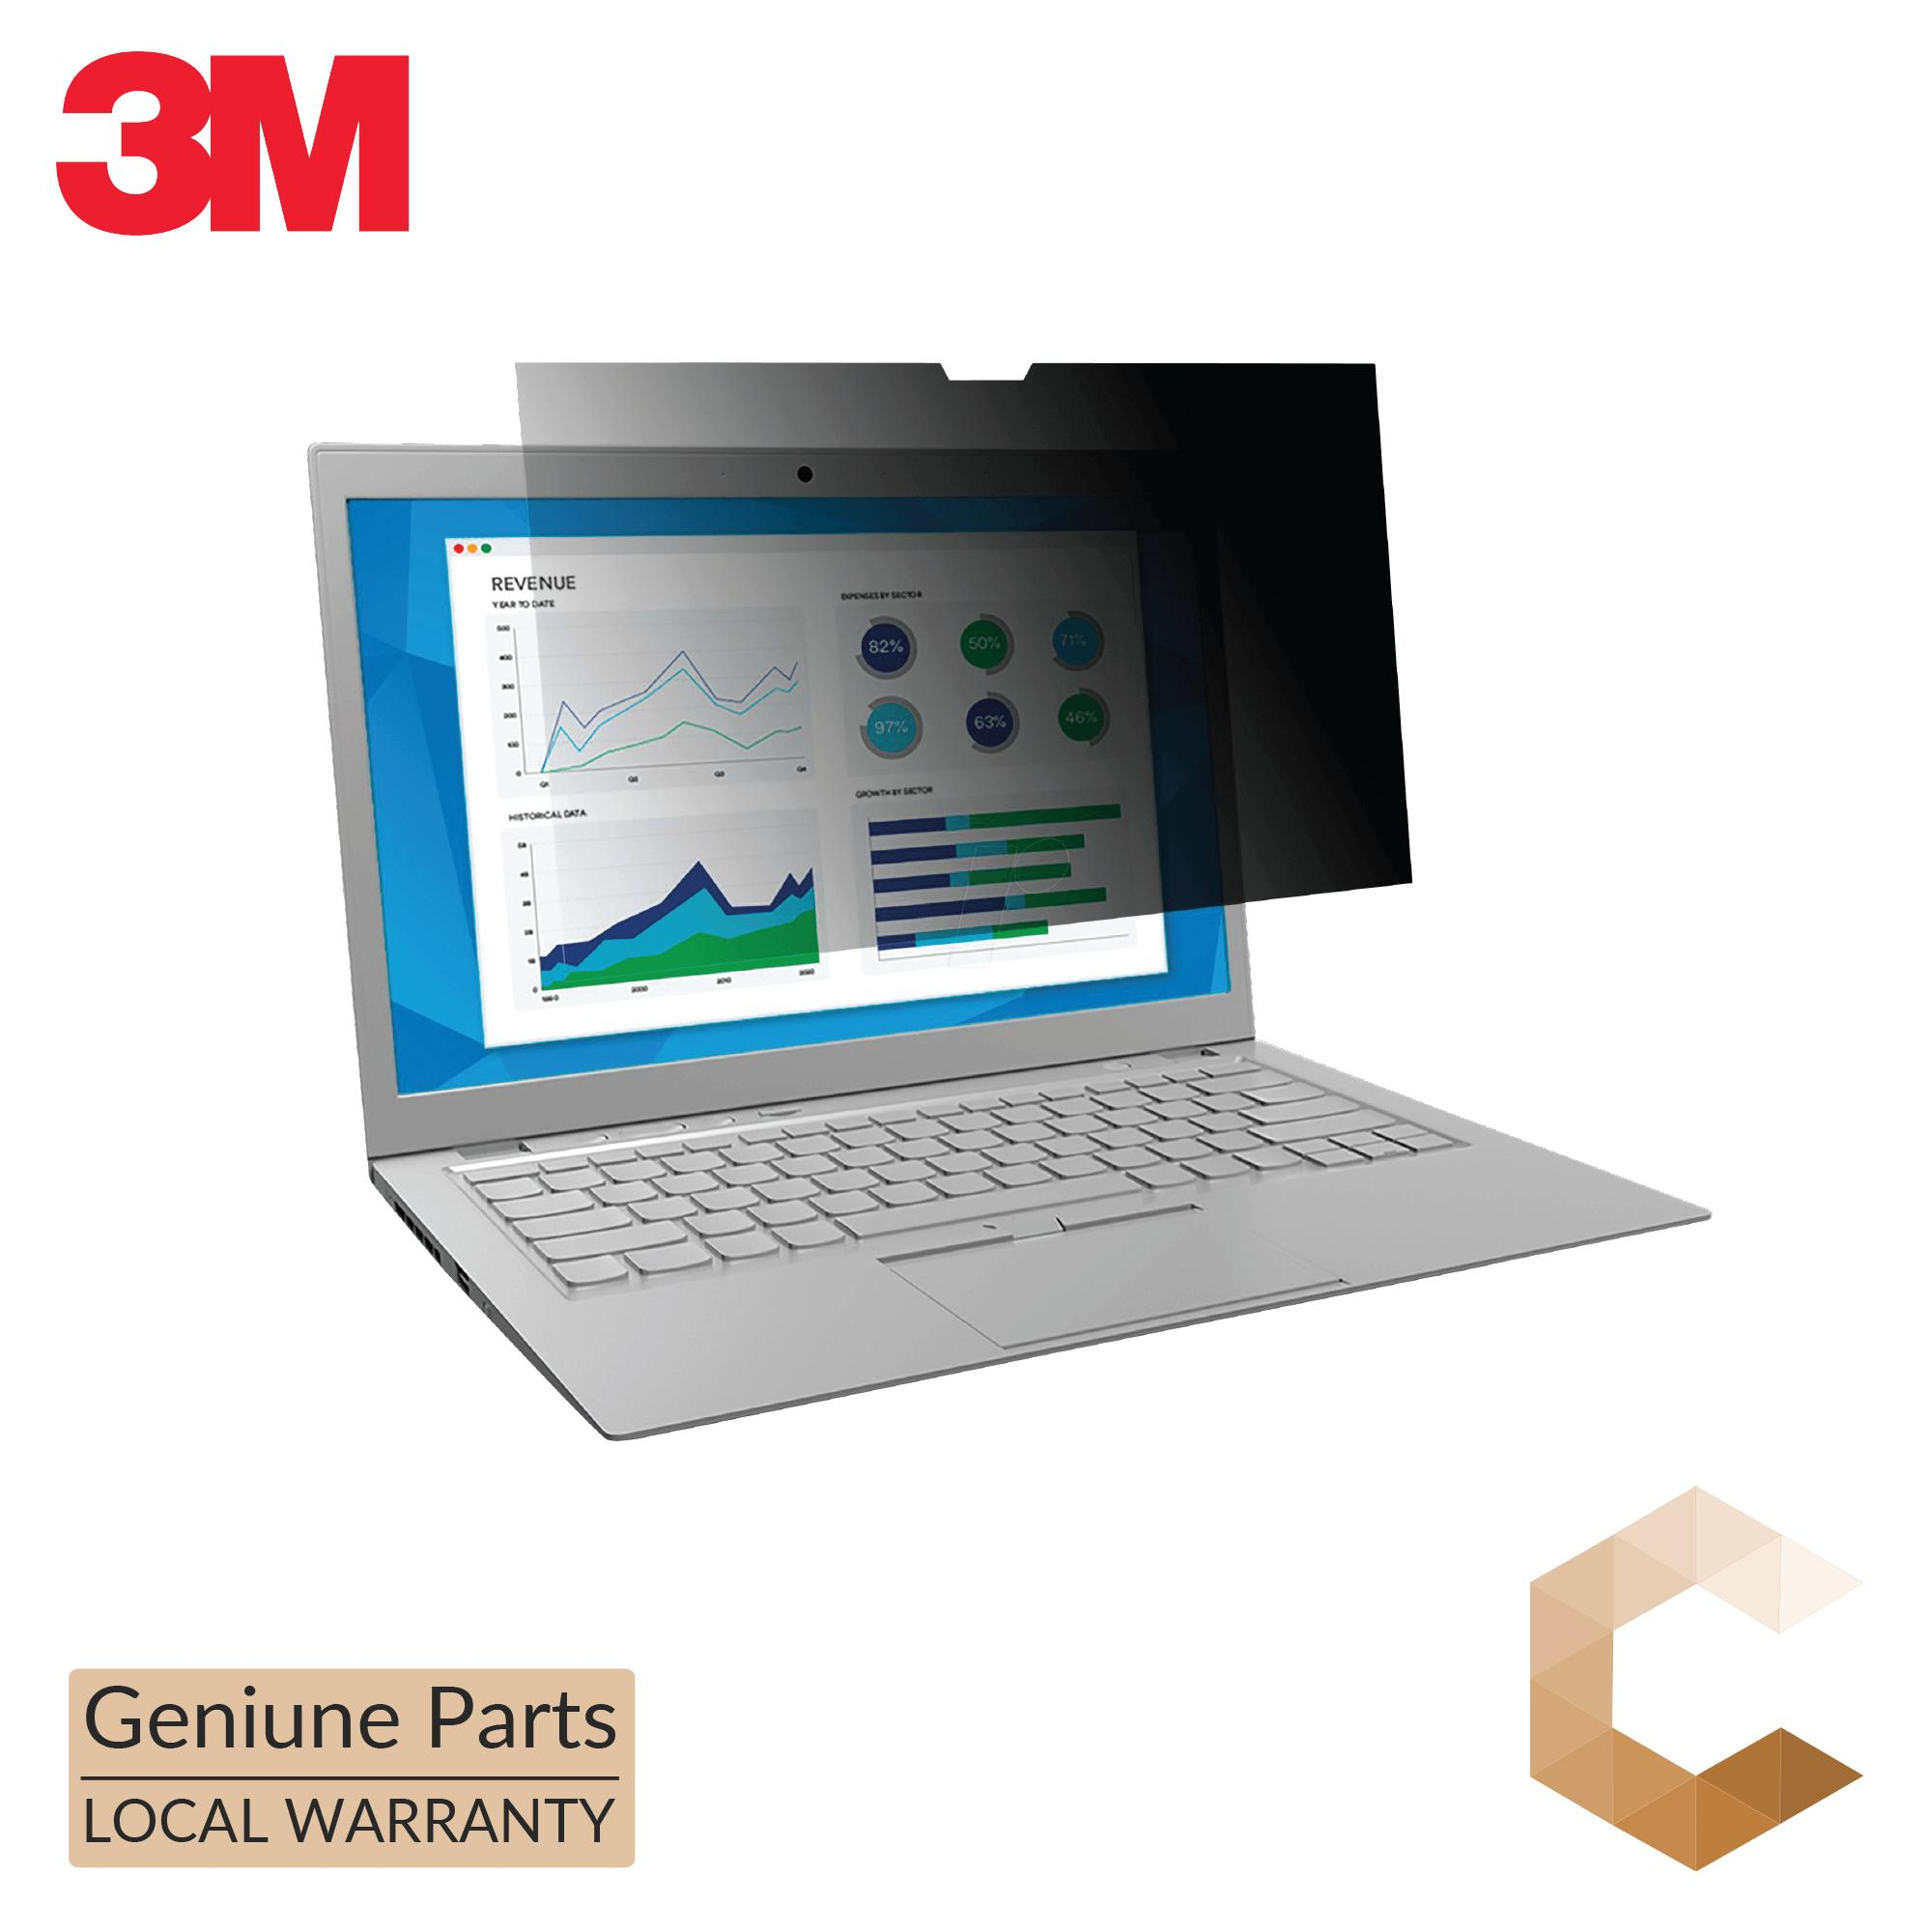 3M™ PF14.0W9 Laptop Privacy Filter (Widescreen 16:9)